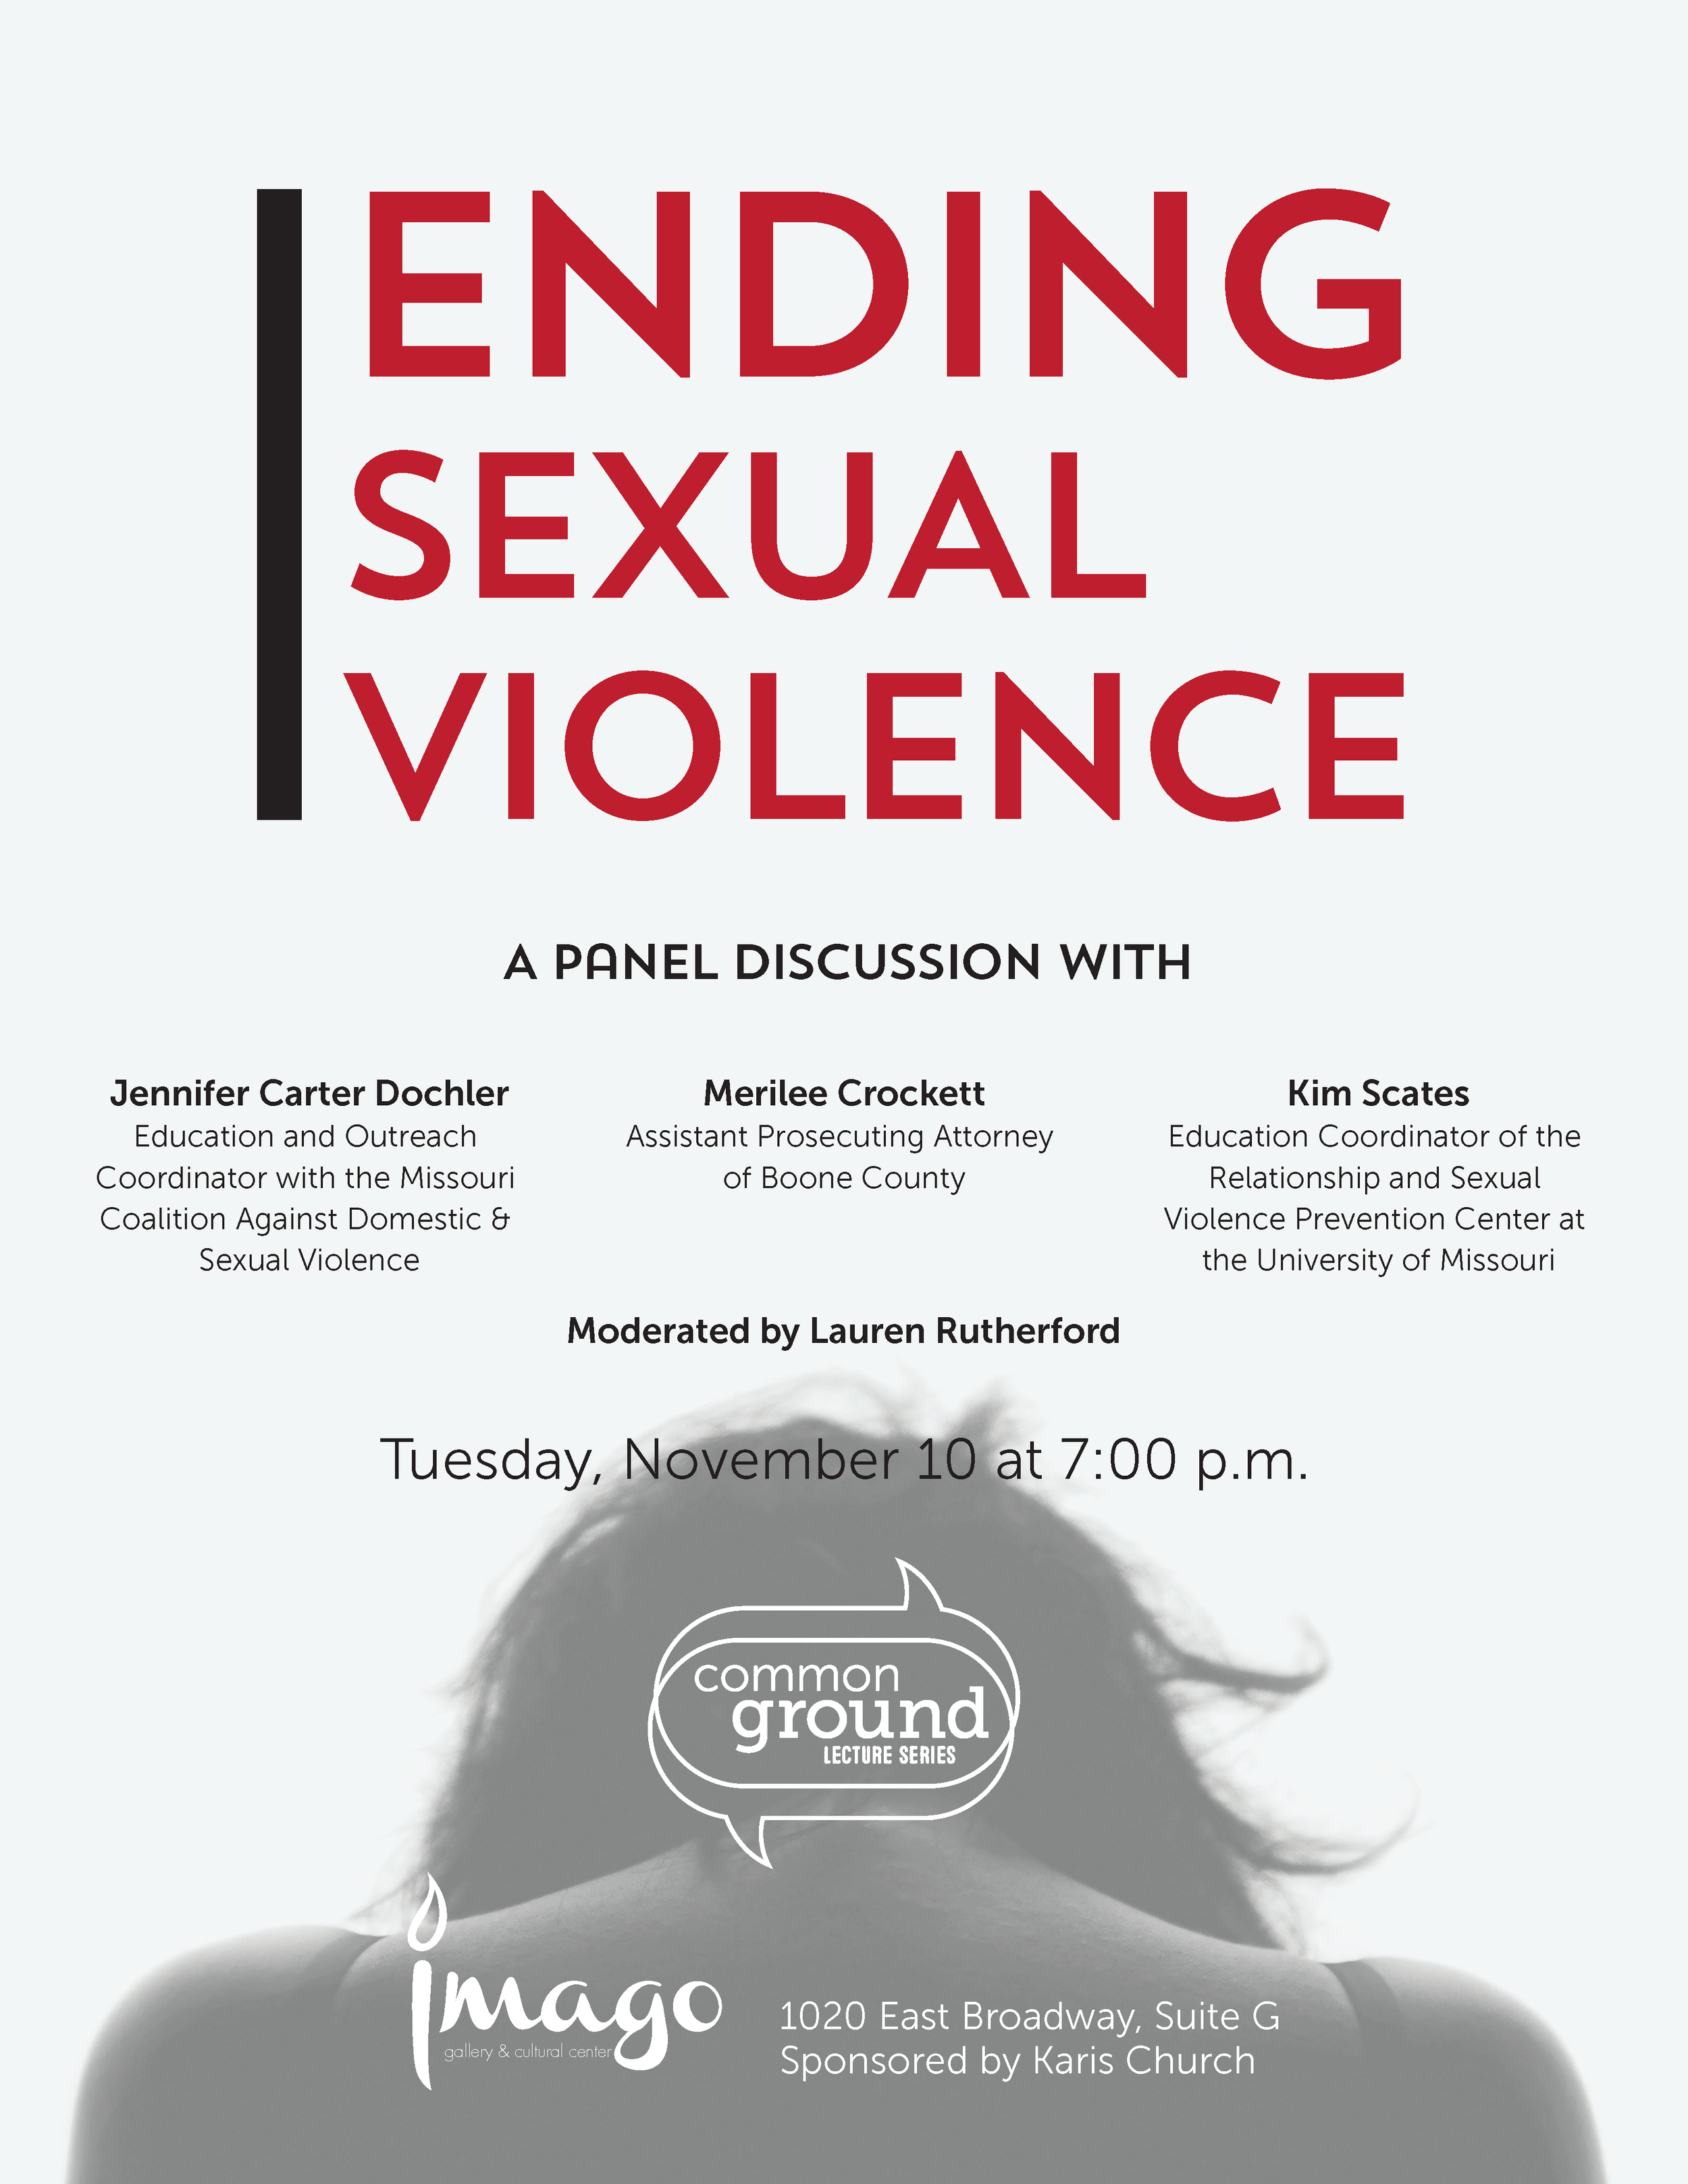 Ending Sexual Violence flyer